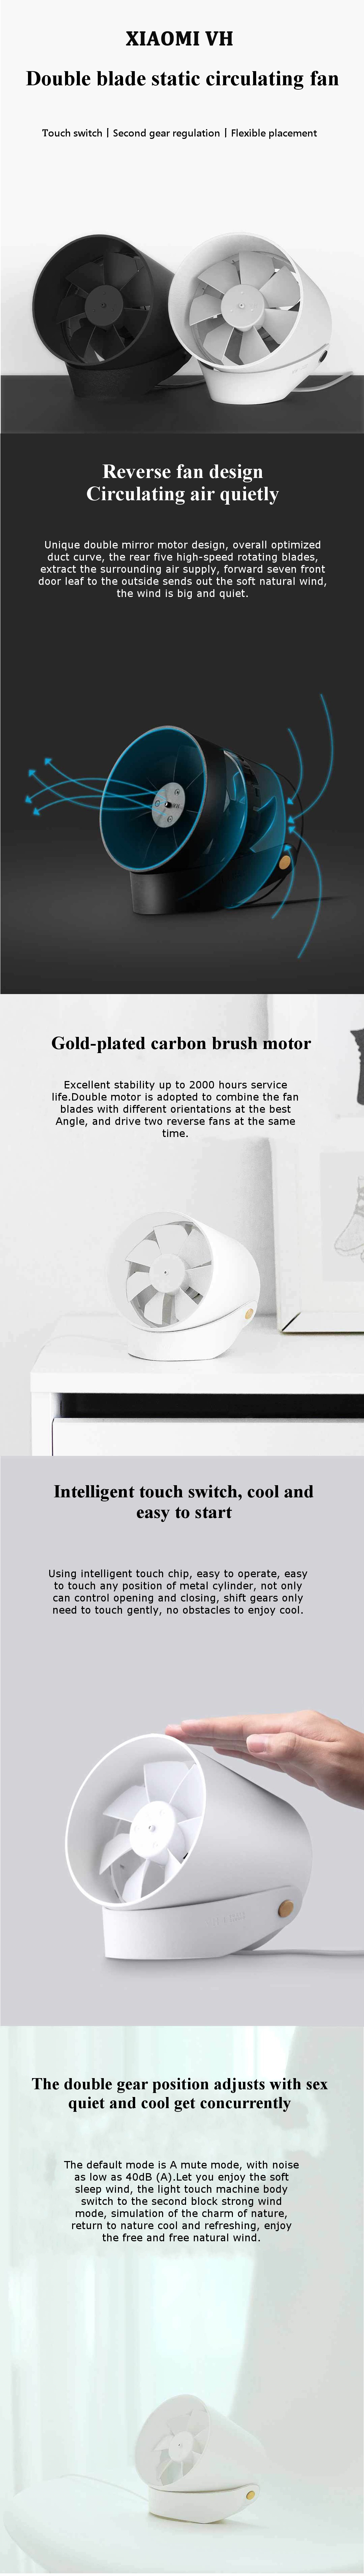 Xiaomi VH DC 5V Portable Mini USB Handheld Desktop Fan 2 Modes Smart Touch Control Wind Cooler